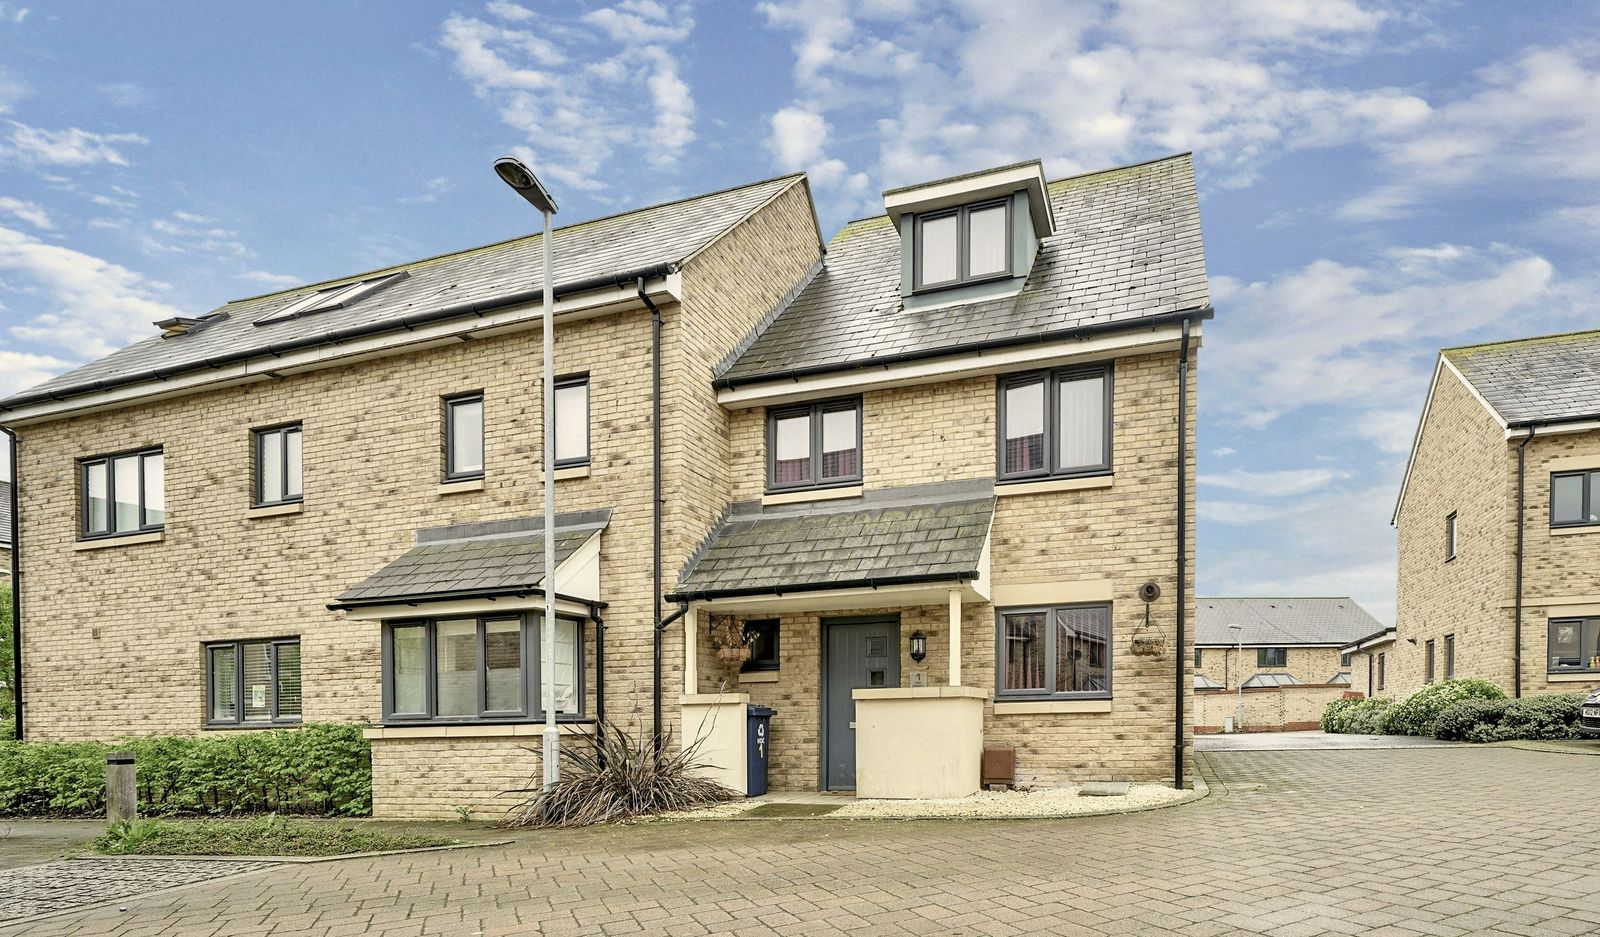 4 bed house for sale in Fox Covert, St. Neots - Property Image 1